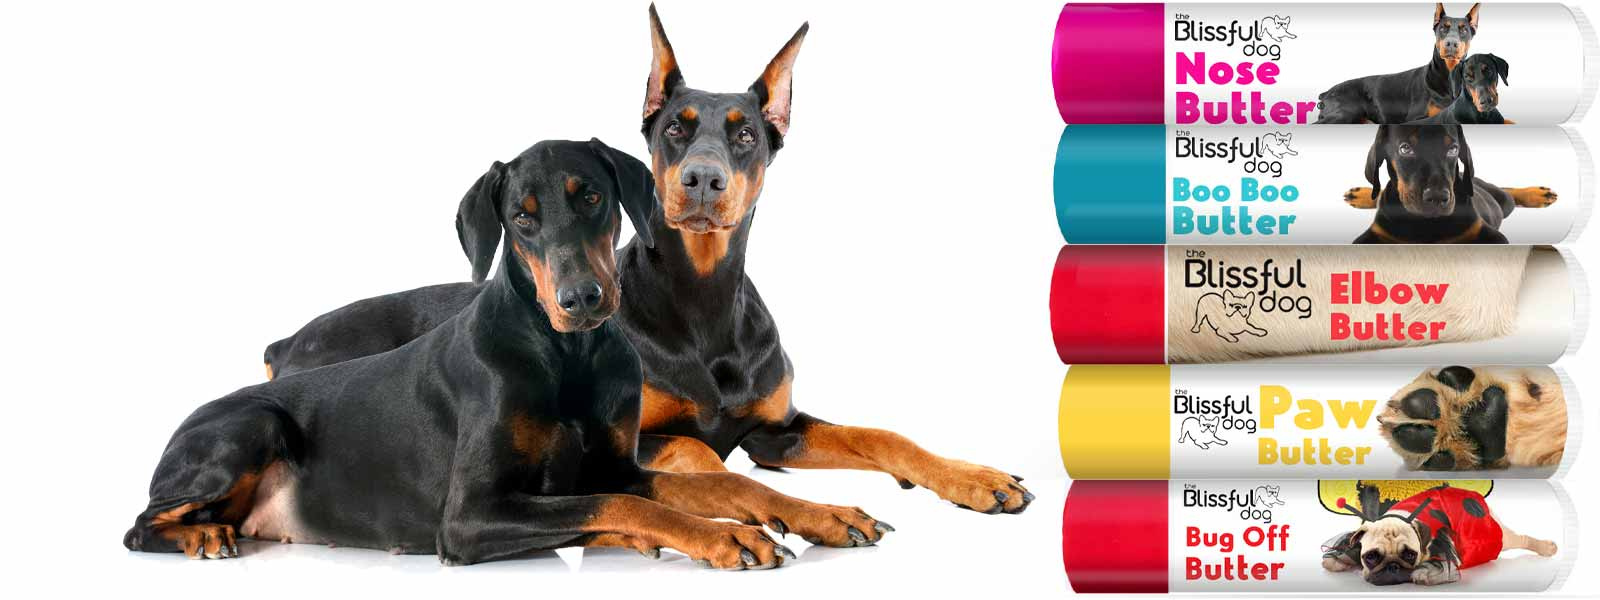 doberman pinscher skin care